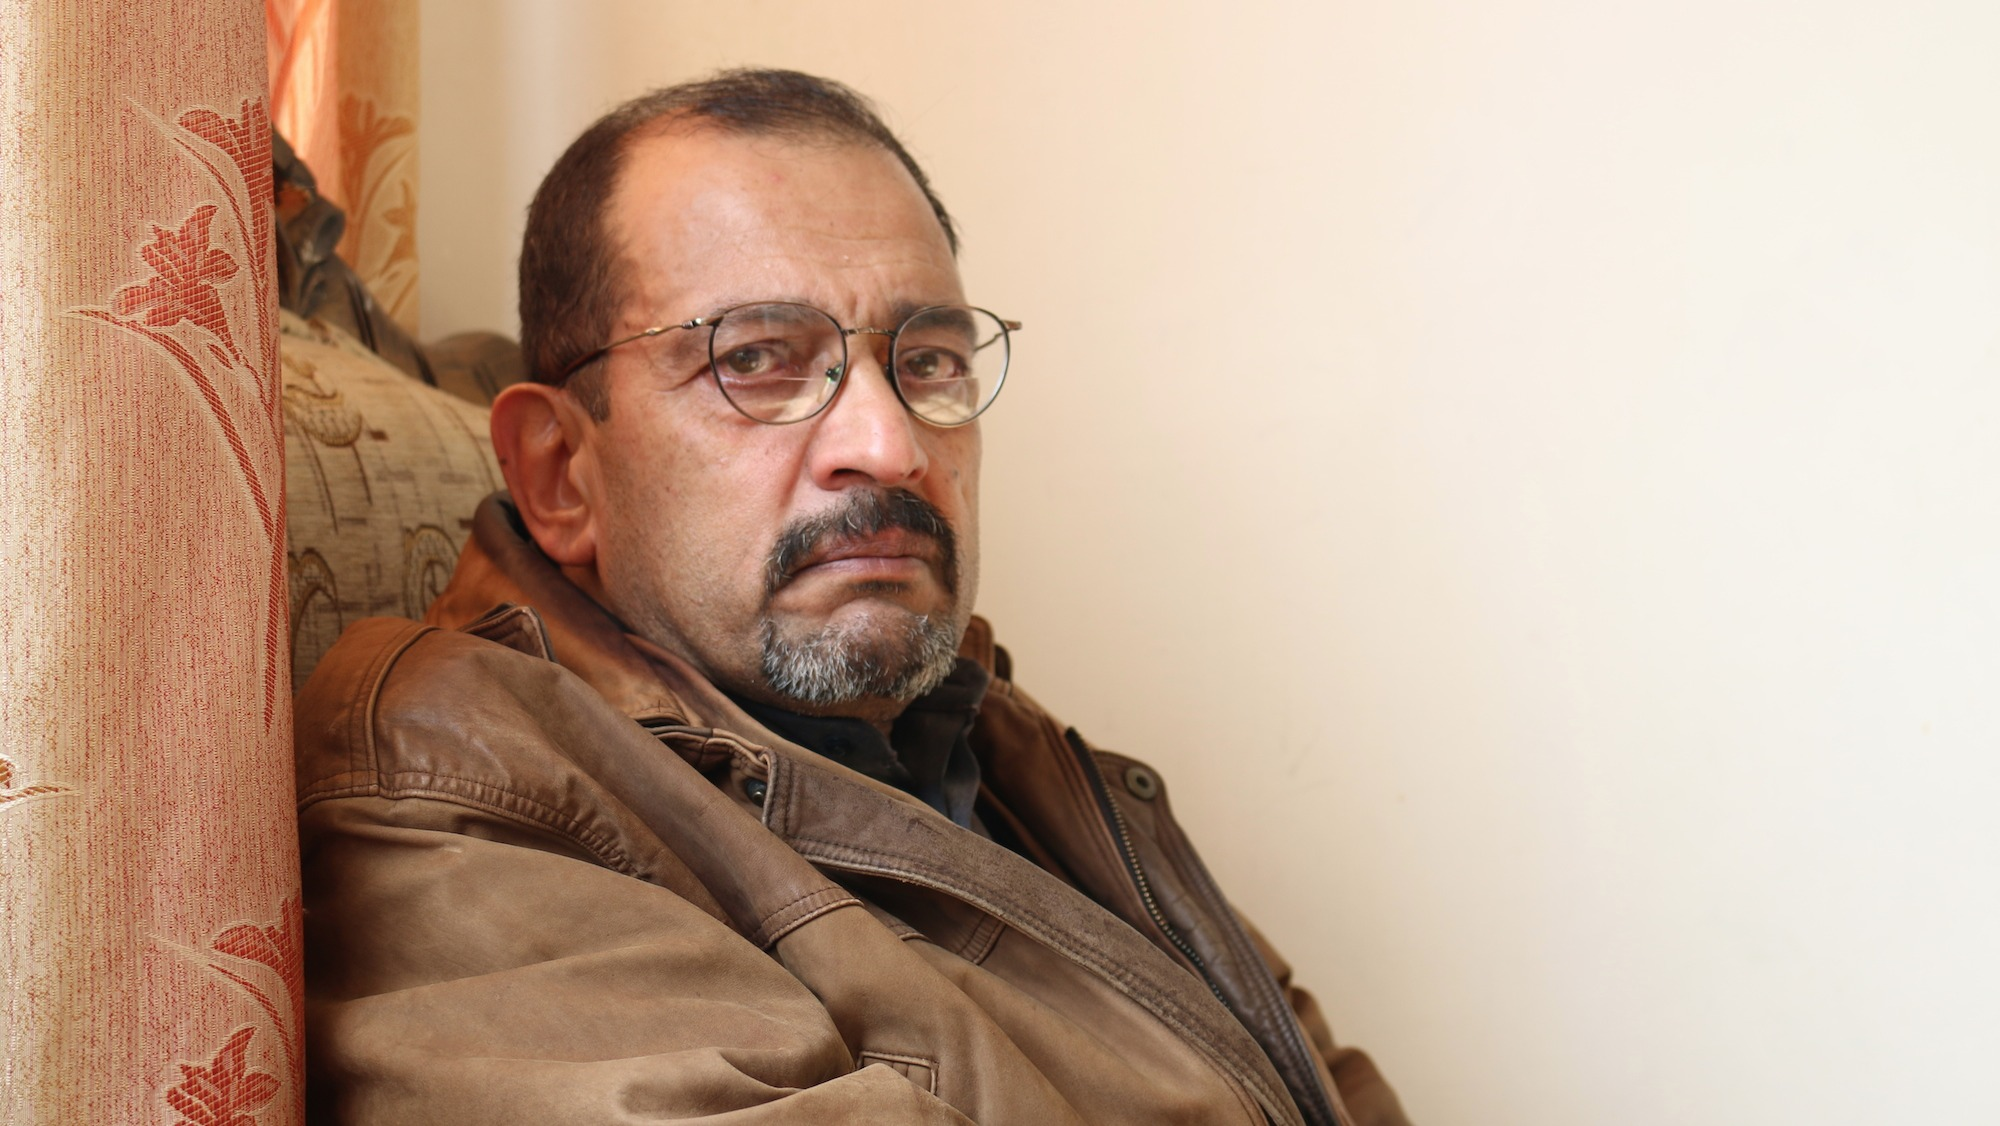 Abdul Majeed Alhamdny, 59, fled to Jordan from Iraq in 2010 as a result of threats to his life. He was the leader of the Sahawat or